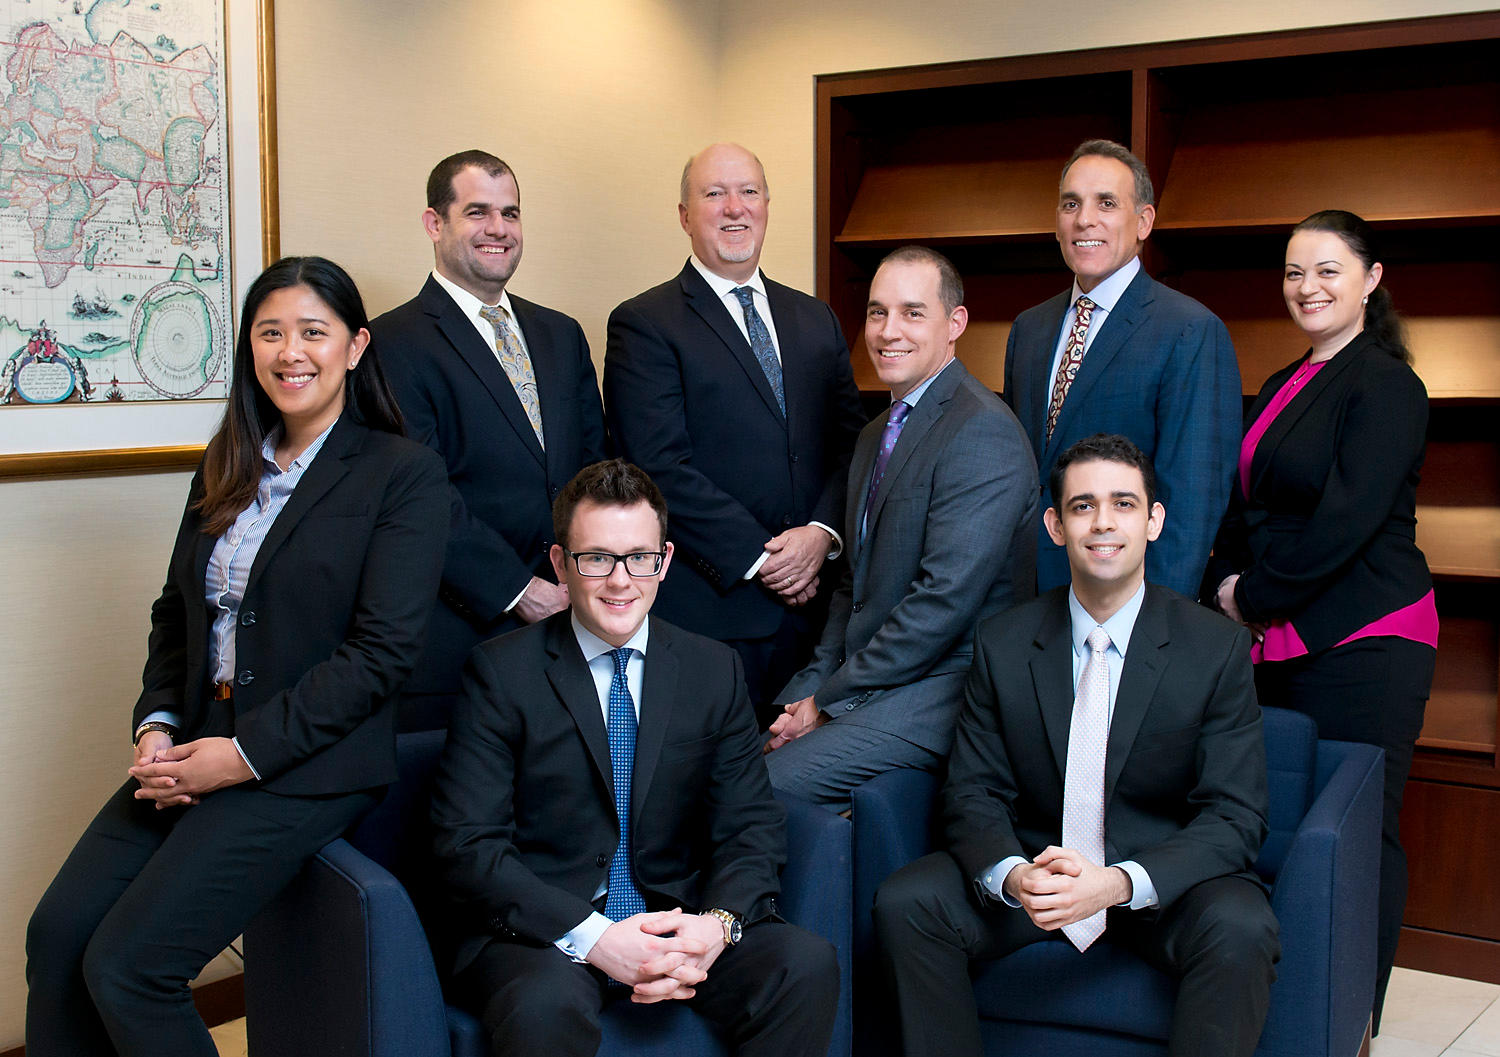 Katz/Bloom Group | Sherman Oaks, CA | Morgan Stanley Wealth